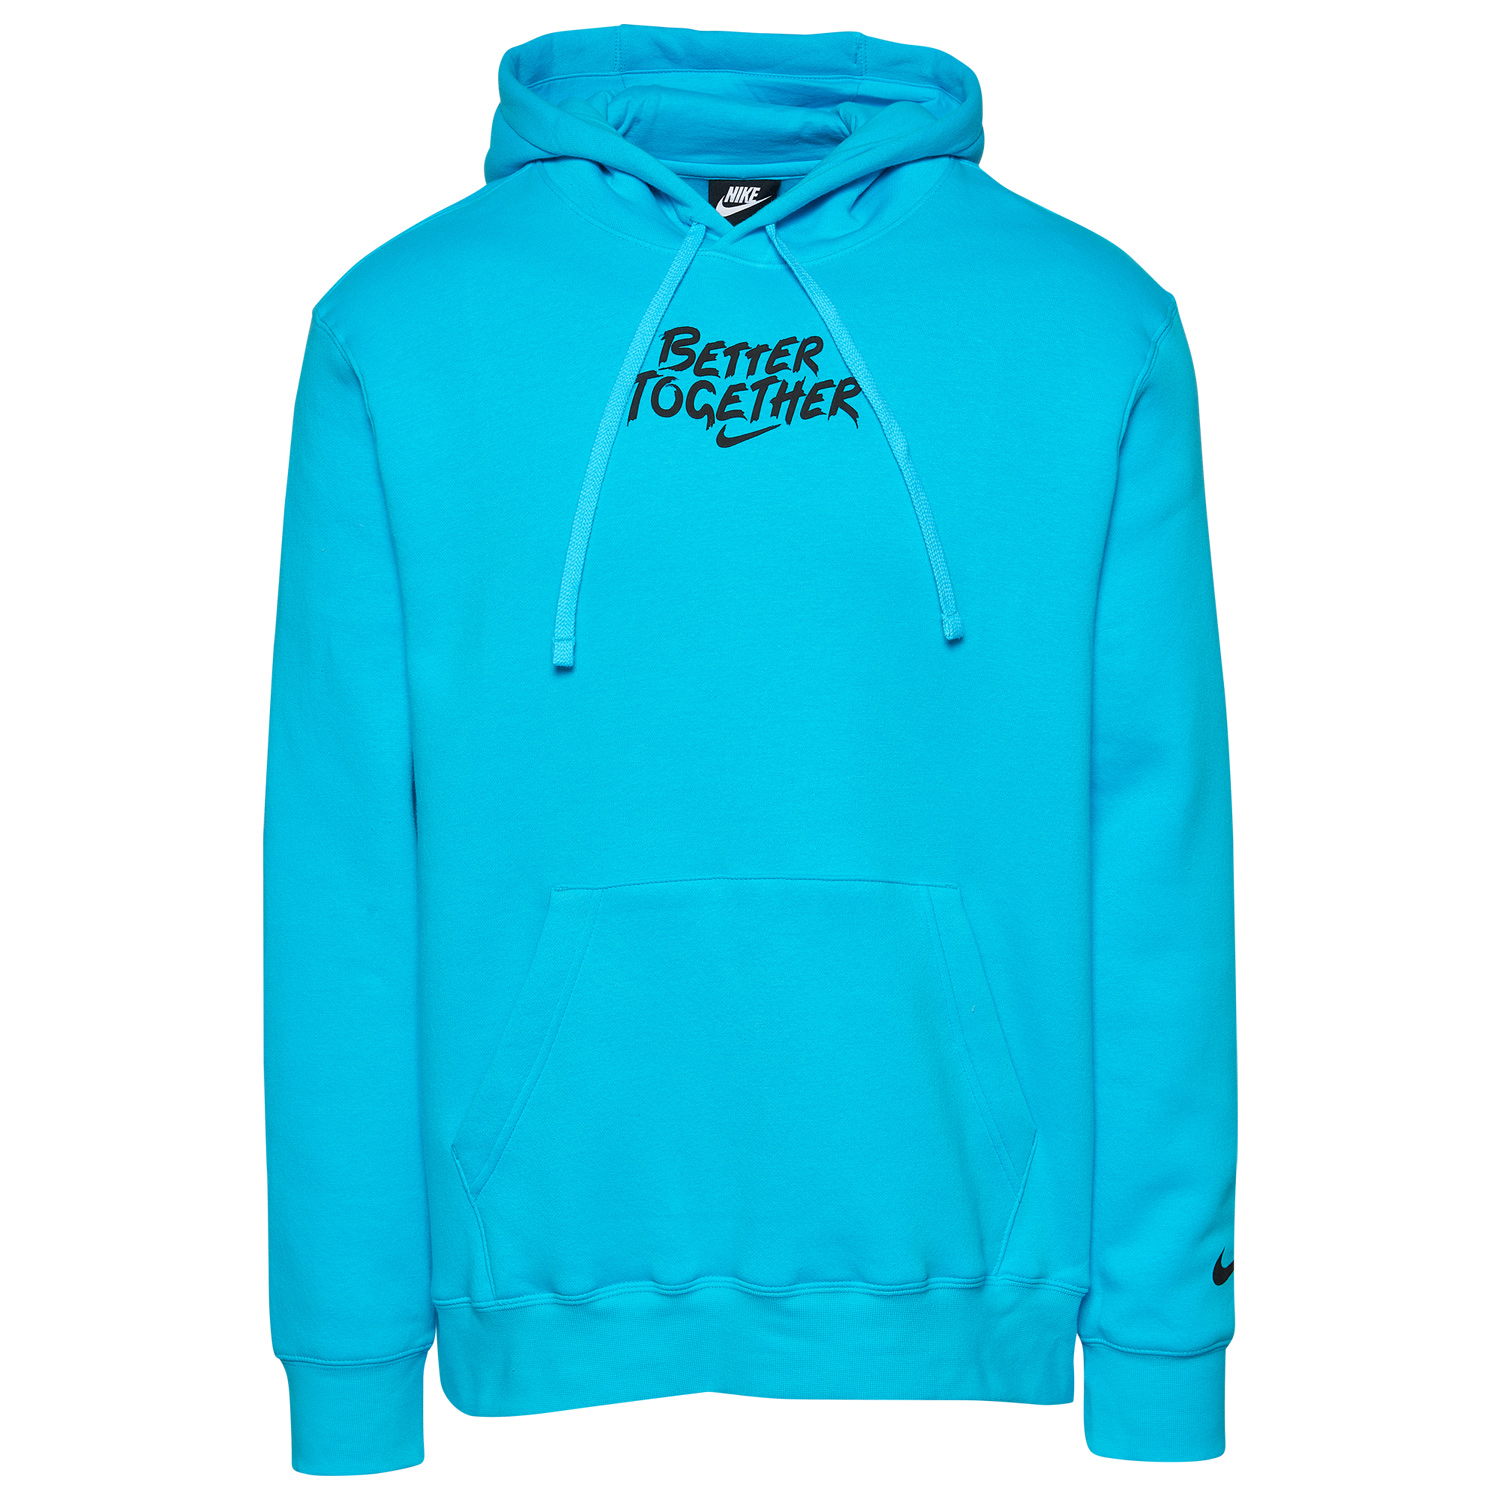 nike-better-together-hoodie-blue